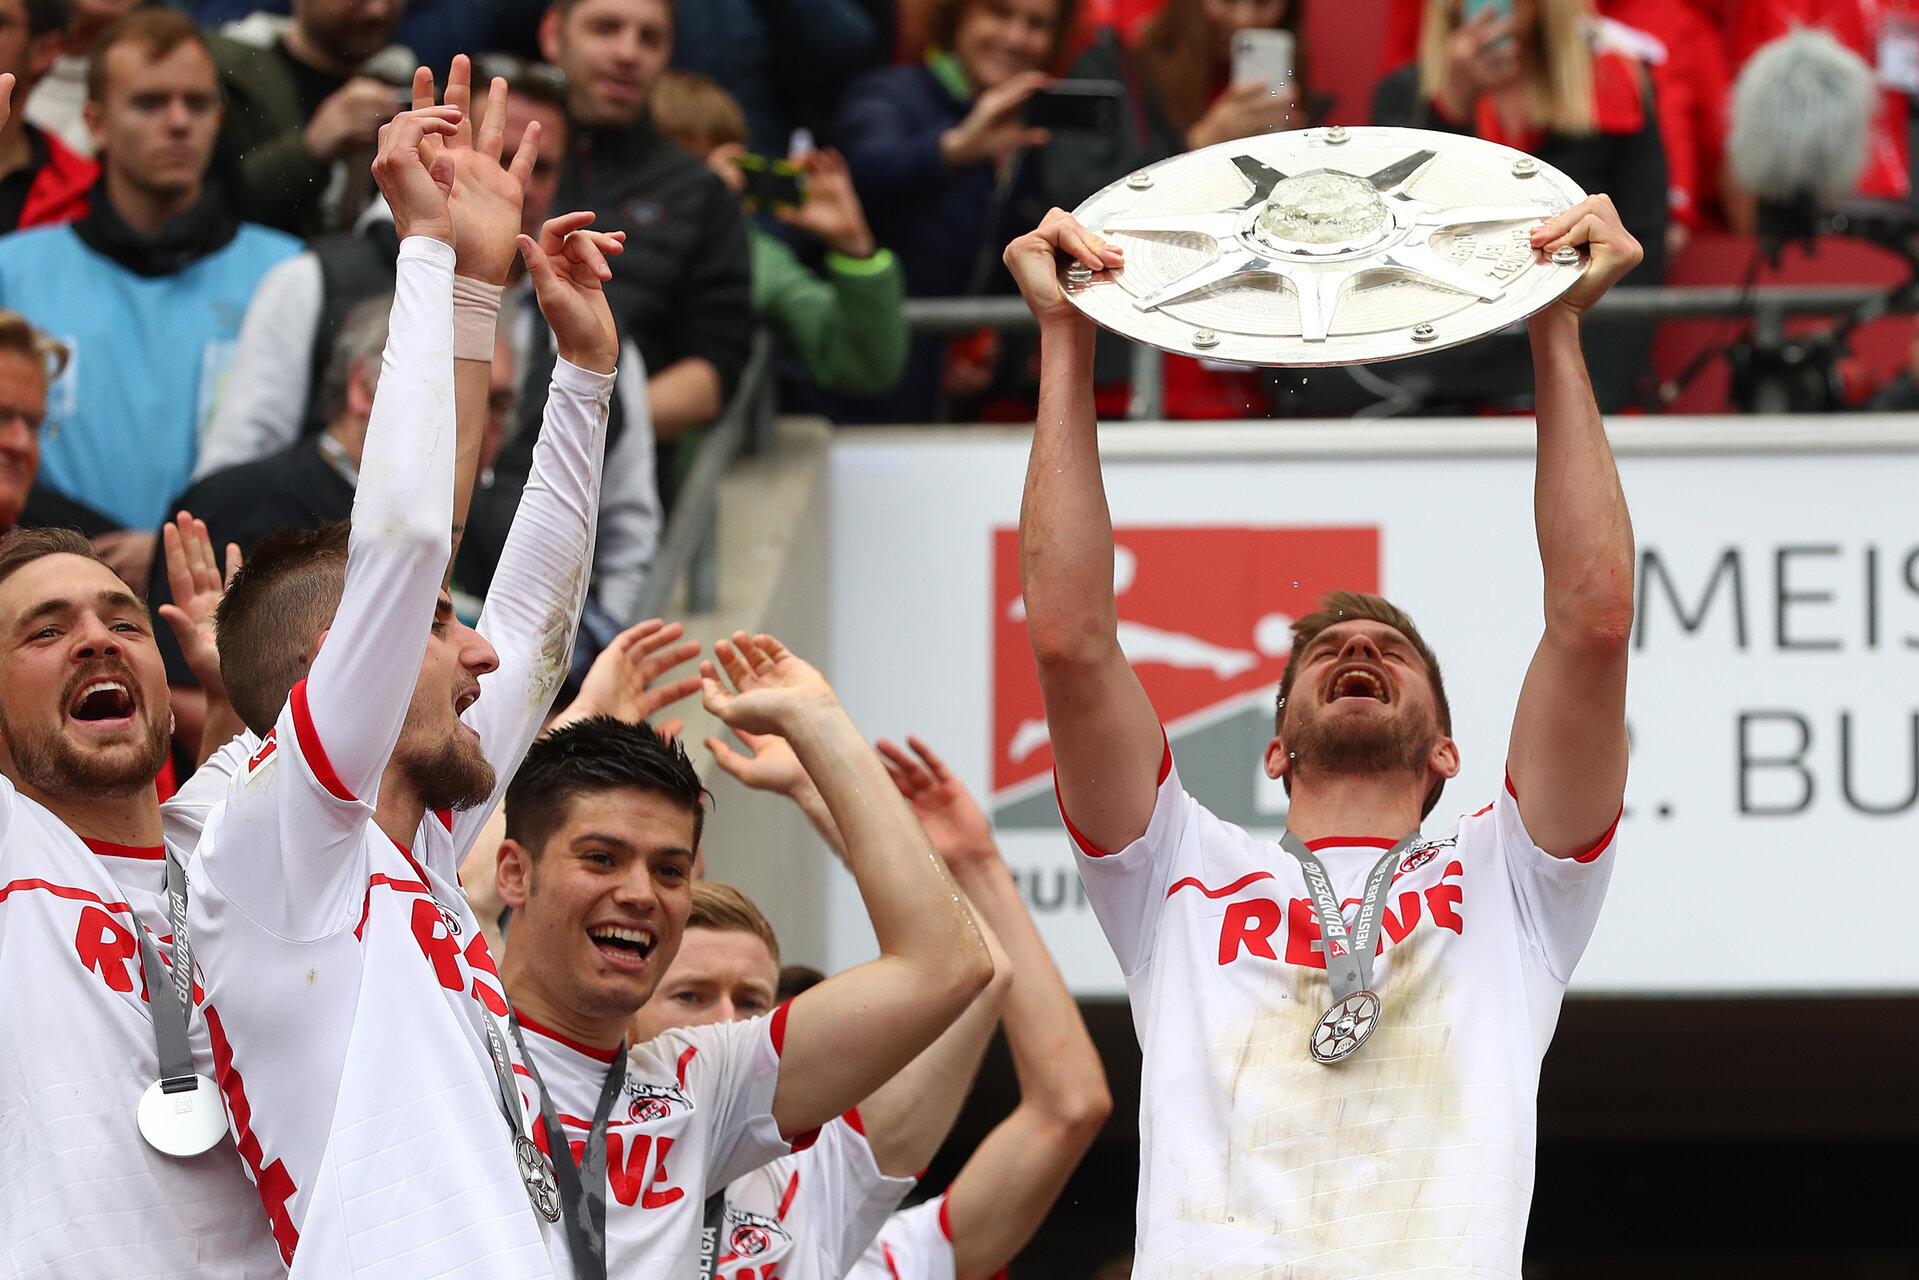 COLOGNE, GERMANY - MAY 12: Simon Terodde of FC Koeln celebrates with the Second Bundesliga trophy at the end of the Second Bundesliga match between 1. FC Koeln and SSV Jahn Regensburg at RheinEnergieStadion on May 12, 2019 in Cologne, Germany. (Photo by Lars Baron/Bongarts/Getty Images)